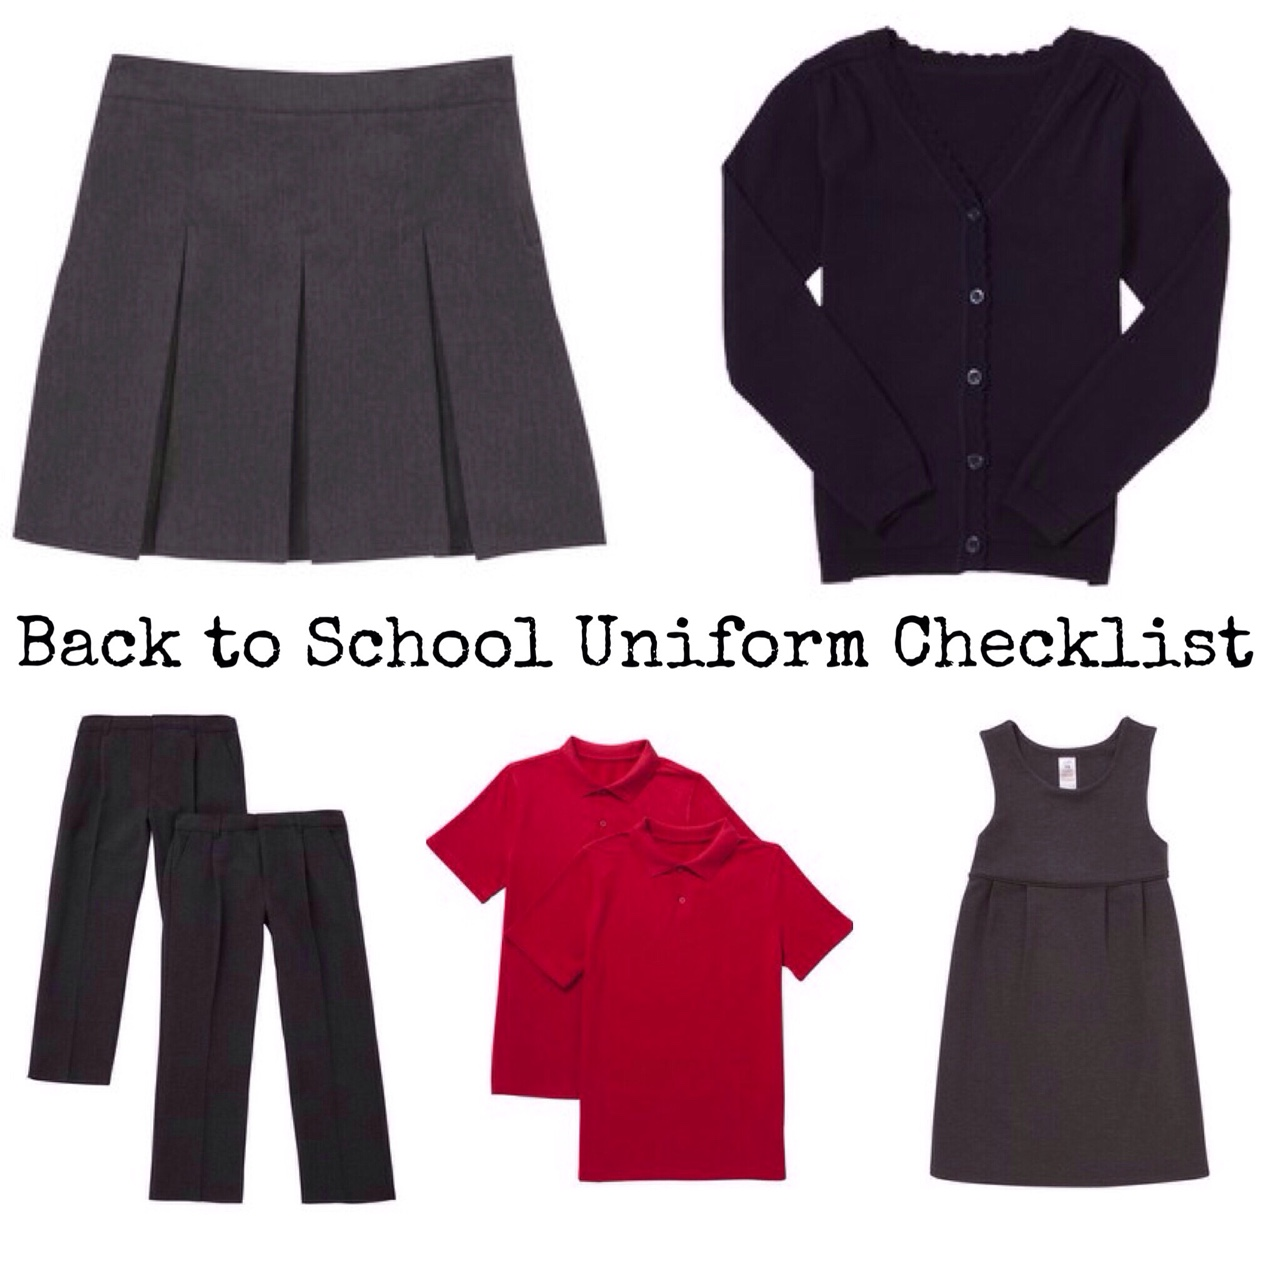 Whether you need school uniform polos or backpacks for school, we are your one stop school uniform store to get everything you need for the school year. Finding the best backpack is high on your priority list for back to school shopping. A school backpack is your child's style statement for the entire year.